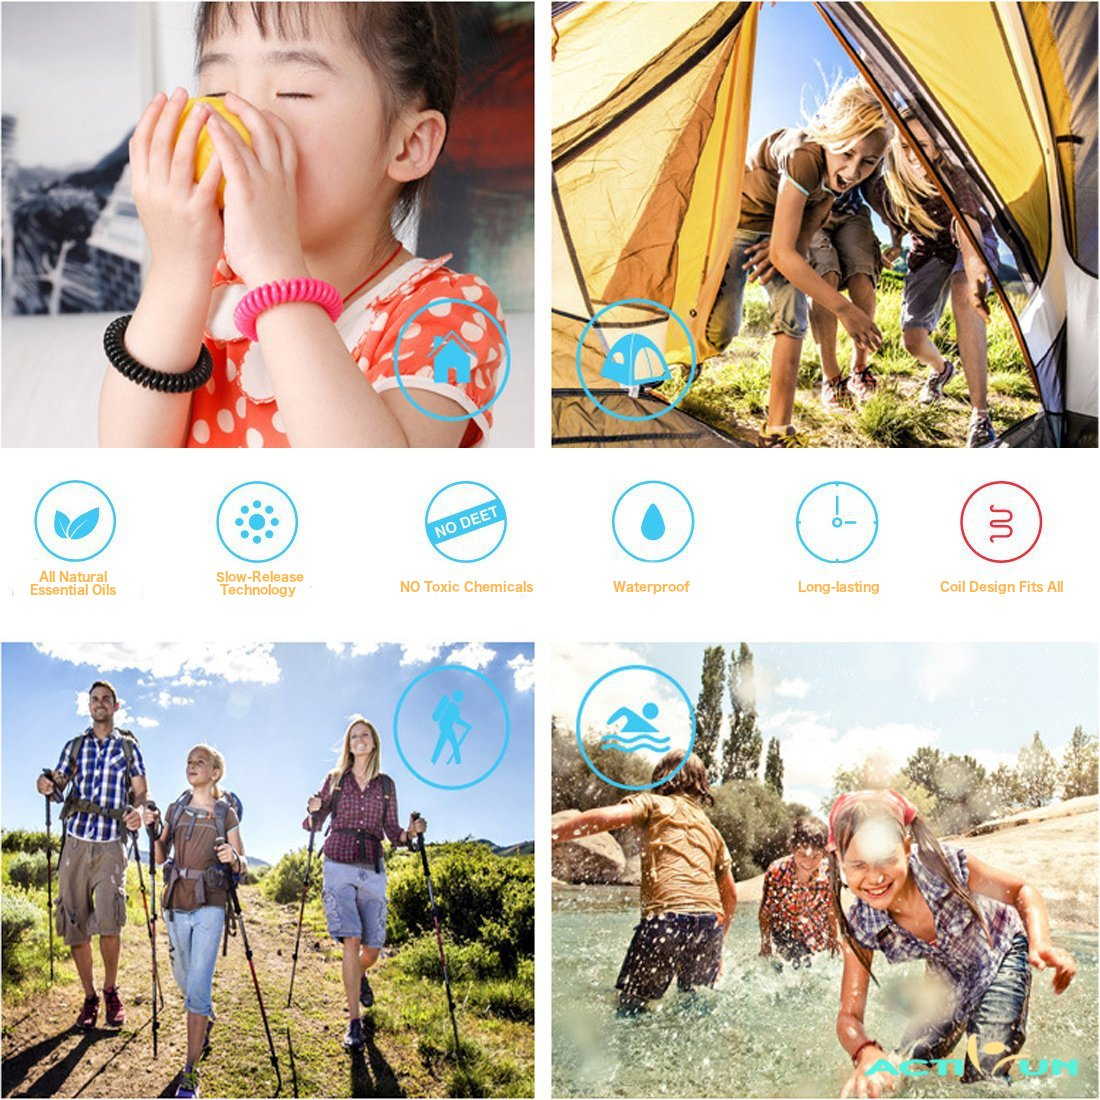 Mosquito Repellent Bracelet Natural Waterproof | 10 Pack | Insect Repellent Wrist Bands, Safe for Kids, Toddlers, Adults, Pets, Outdoor Mosquito Protection, Deet-Free, Best Bug Band and Patch